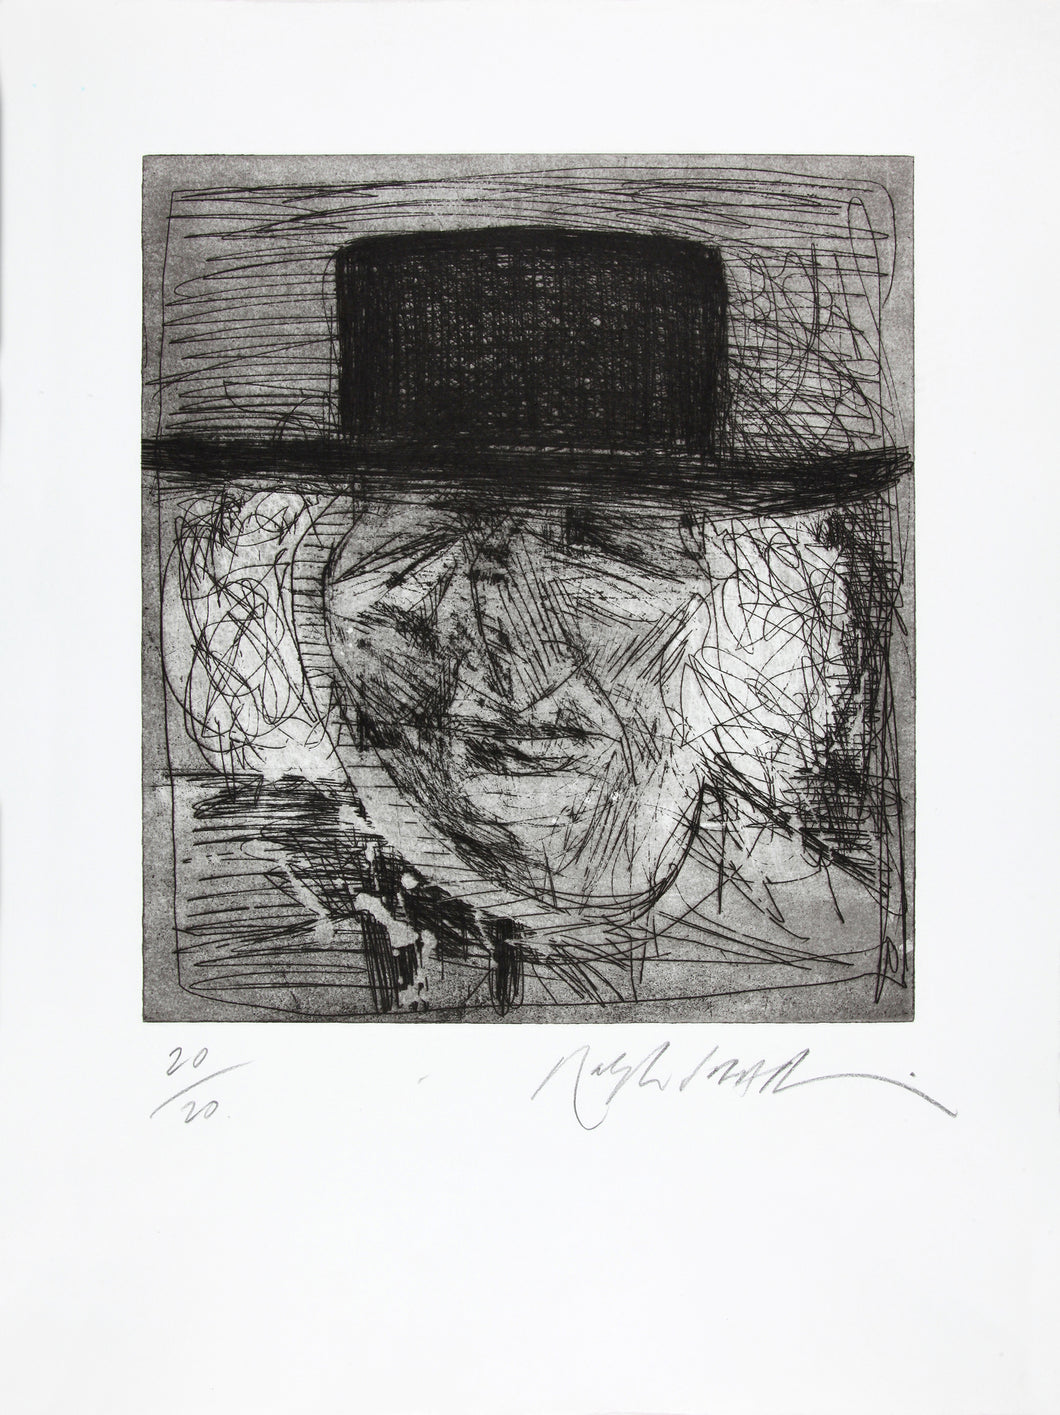 ROBERT GRAVES | RALPH STEADMAN